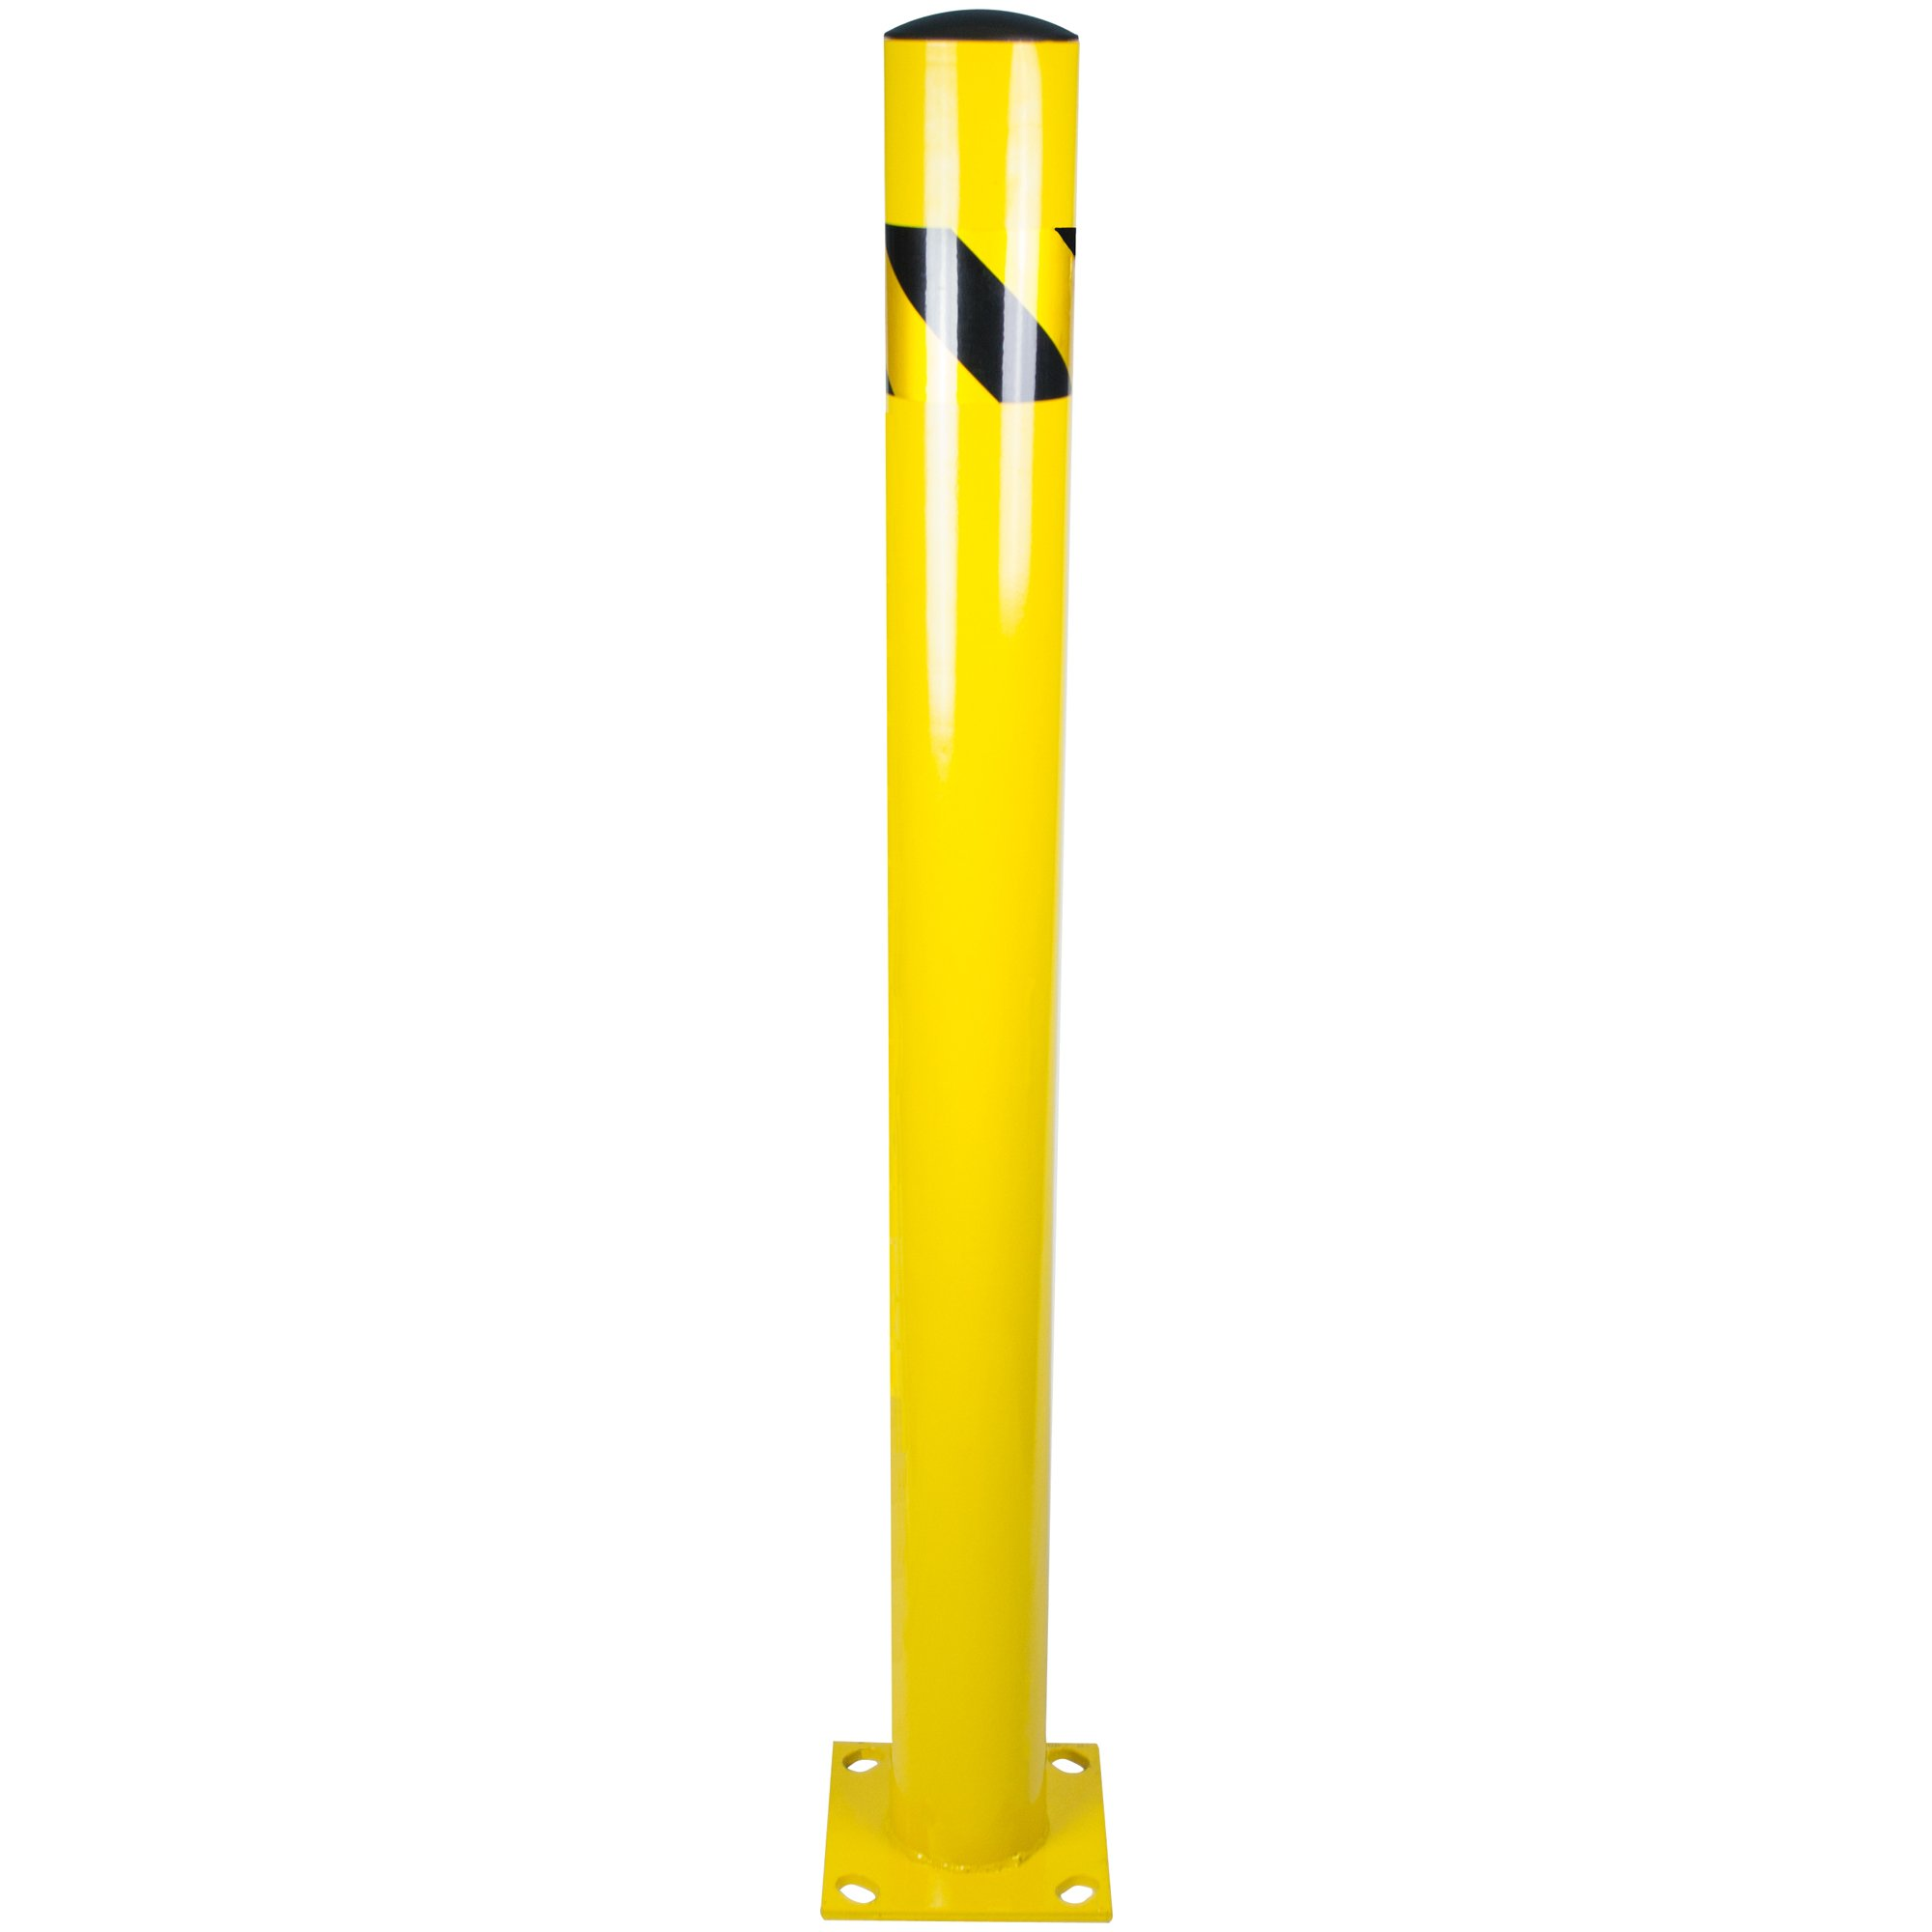 Bollard Post - Steel Safety Barrier Protection- Yellow Powder Coat 4.5'' Diameter 48'' Tall BW4548 by BUNKERWALL